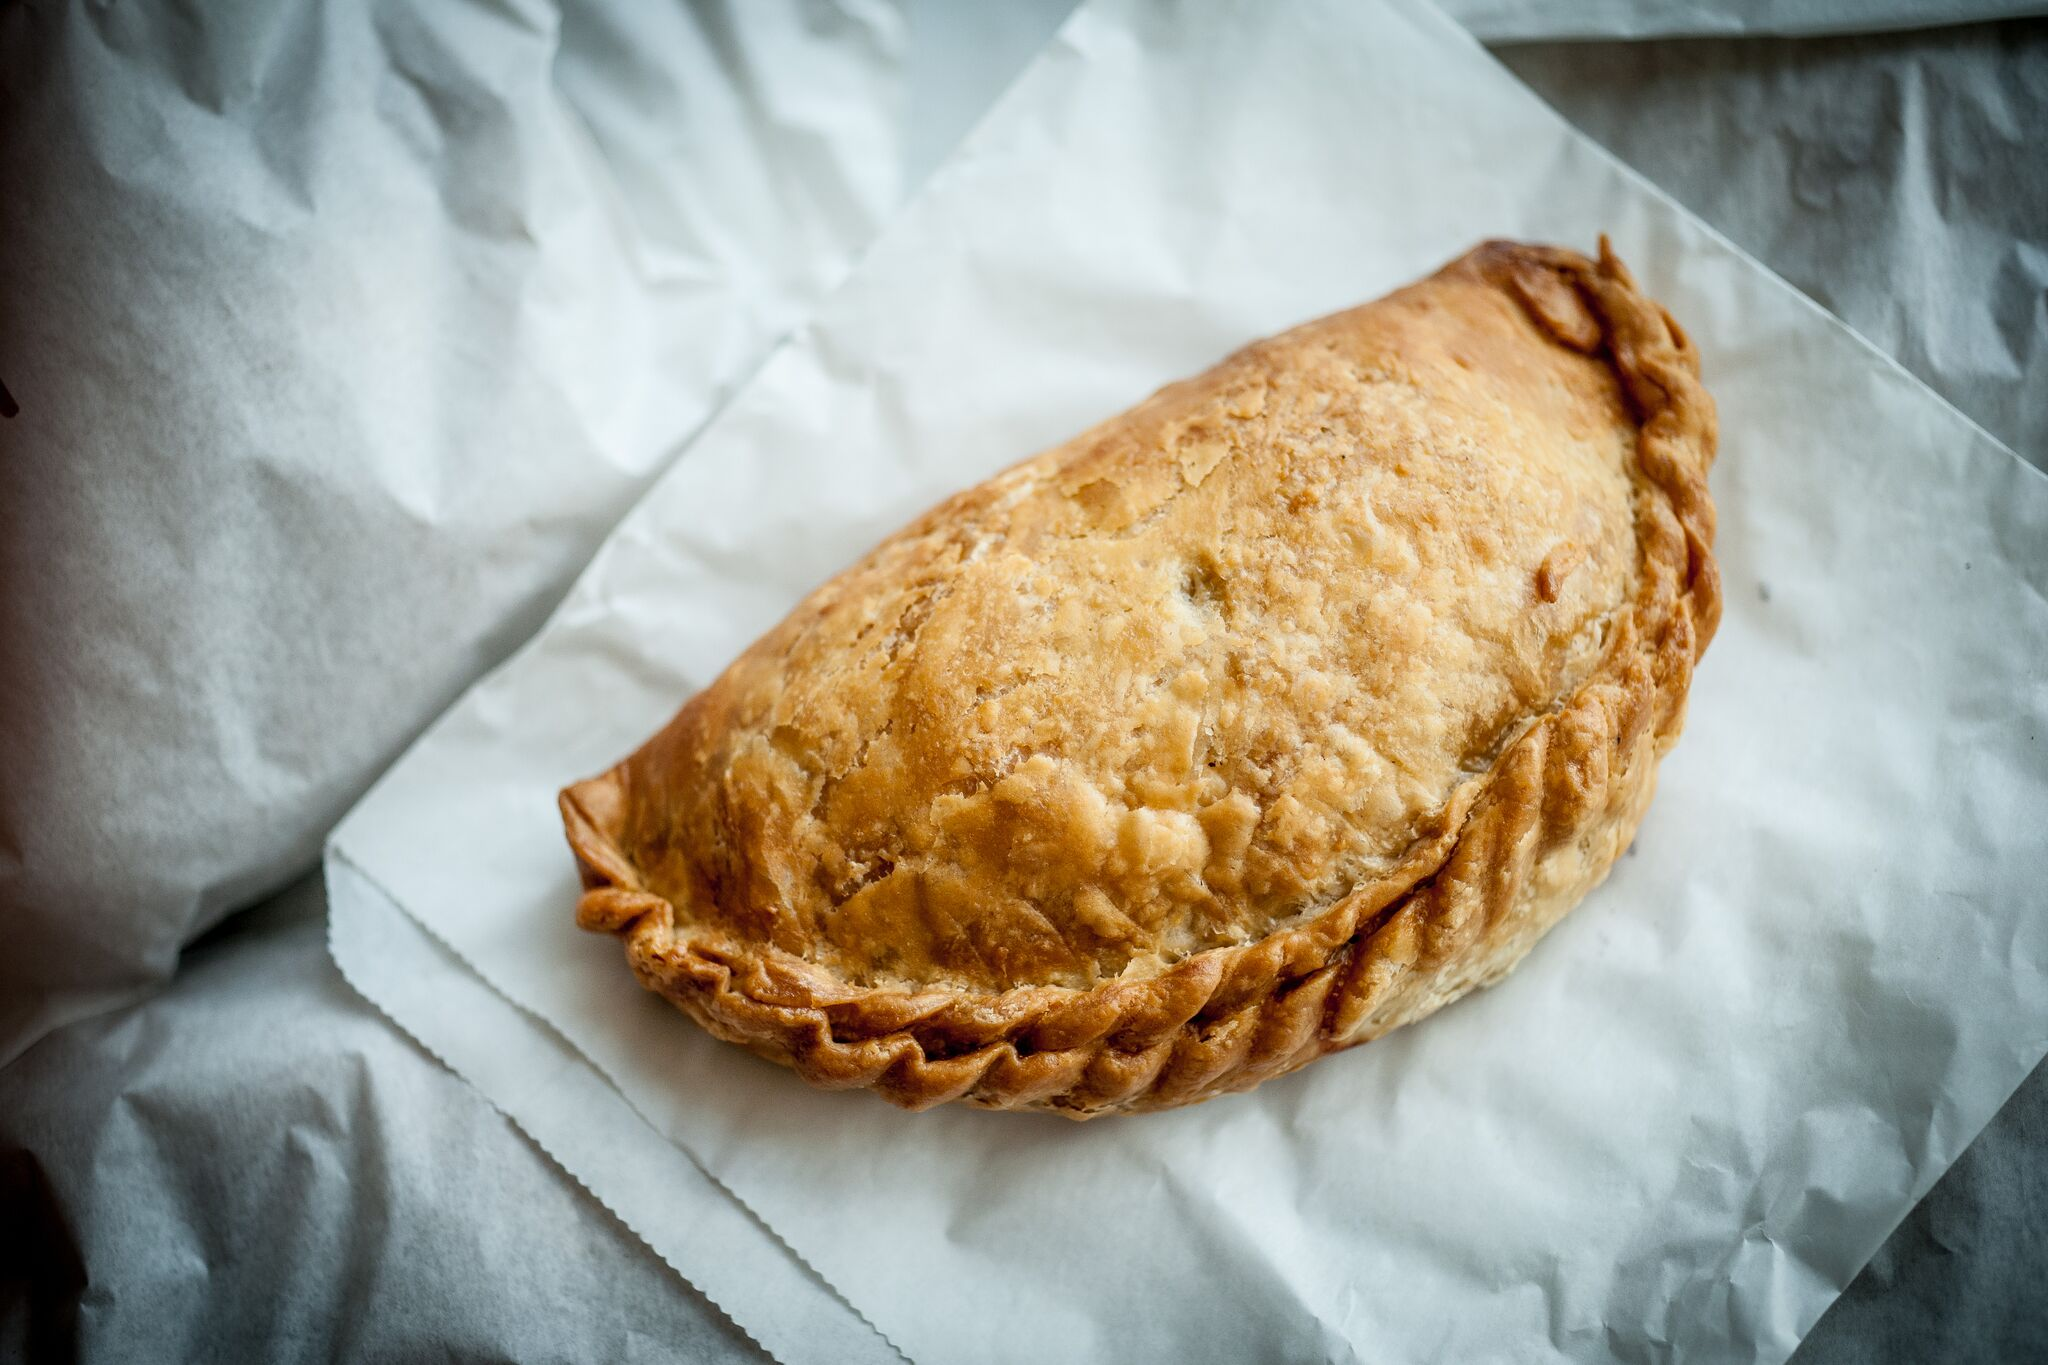 Where to Buy Pasties